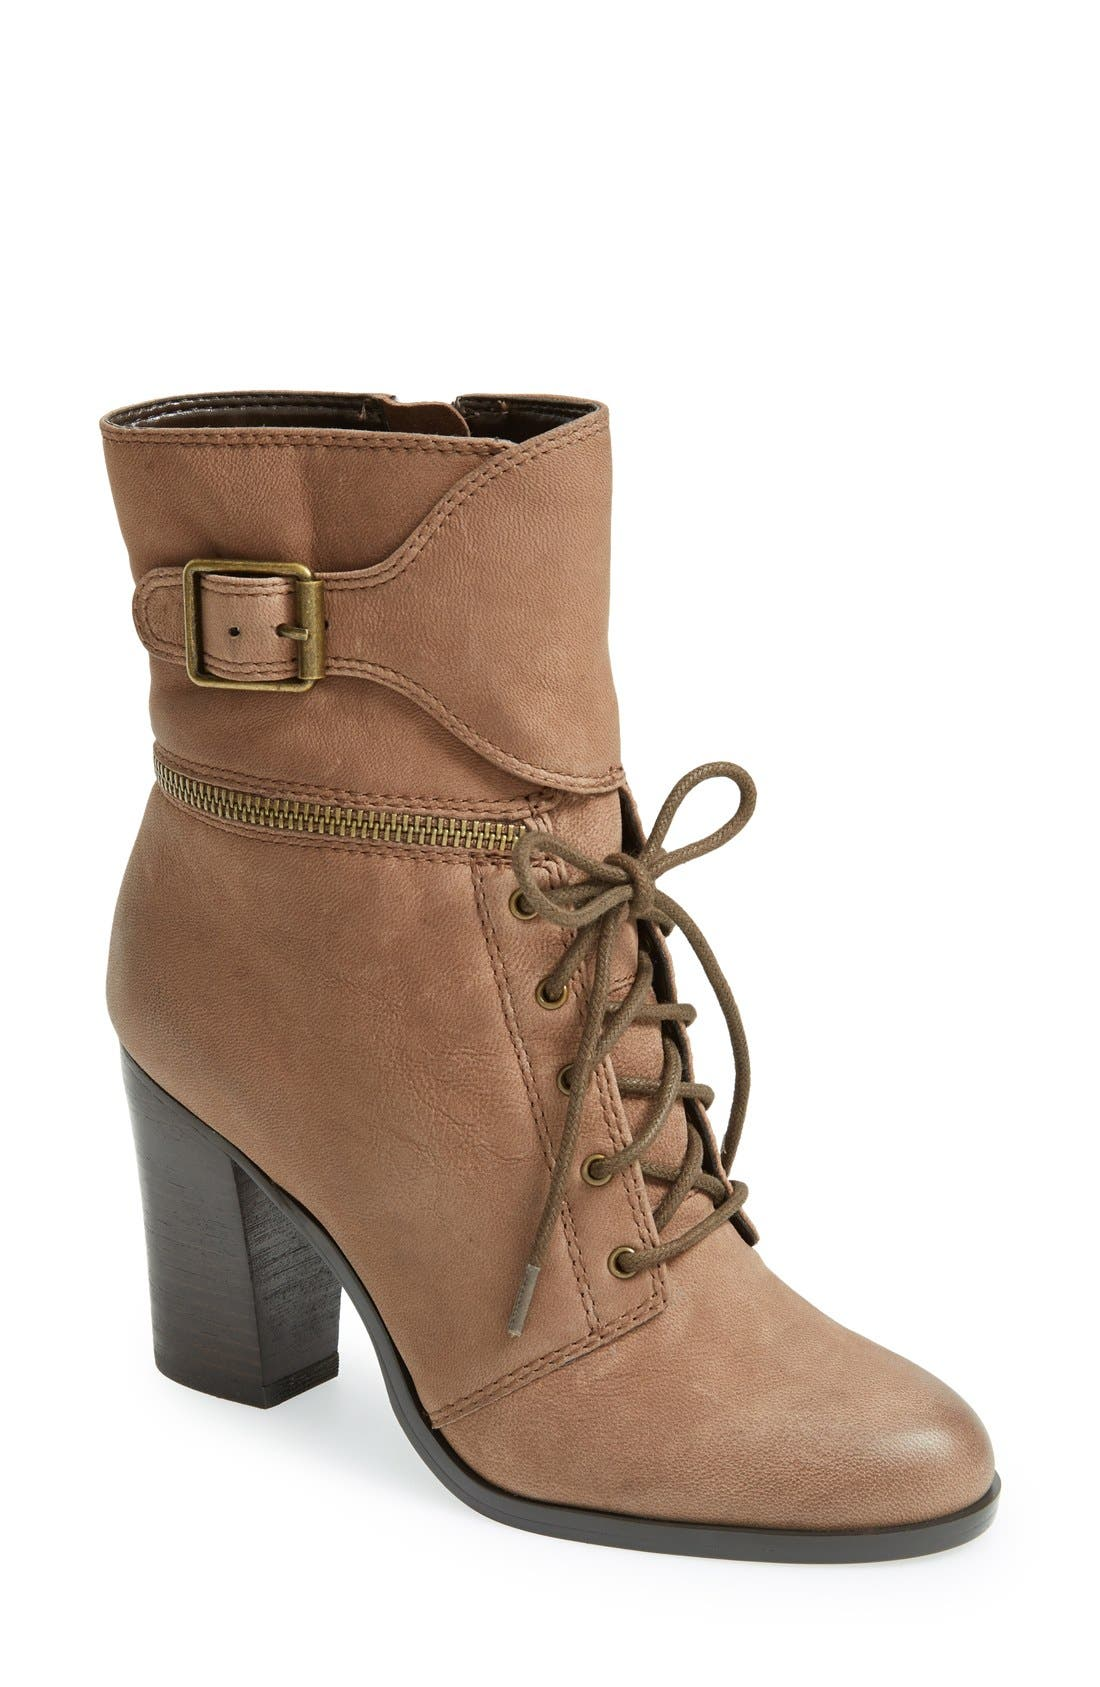 Main Image - T Tahari 'Farah' Leather Bootie (Women)